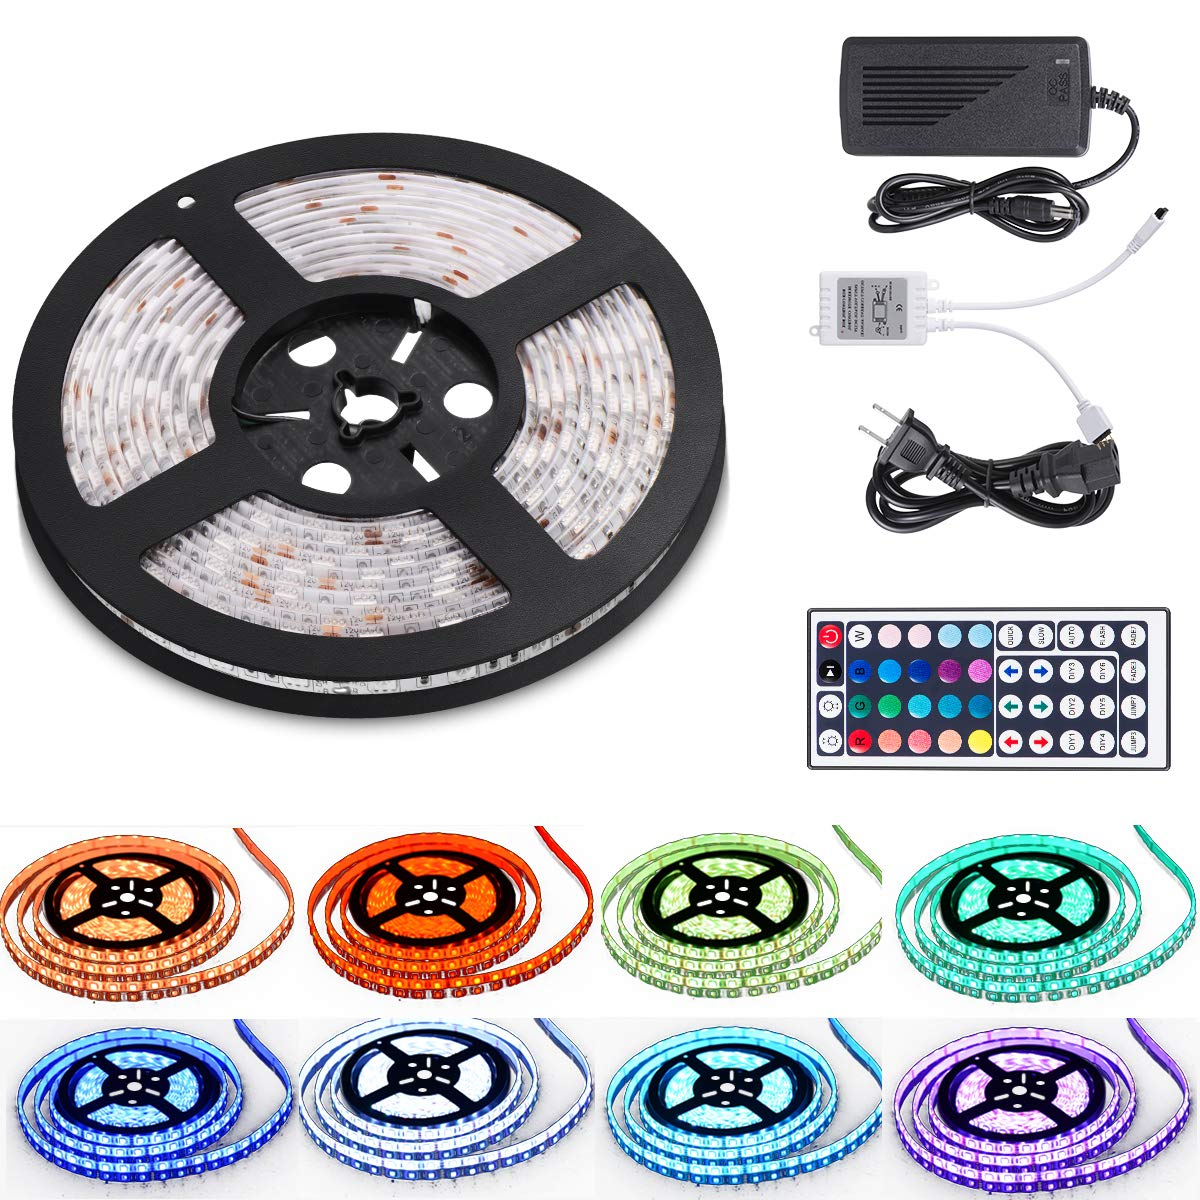 16.4ft LED Flexible Light Strip,12V DC Waterproof Flexible Light Strips, RGB 300 LEDs SMD 5050 Light Strip Kit with 44Key Remote Controller,Power Supply for Kitchen Bedroom Car Party